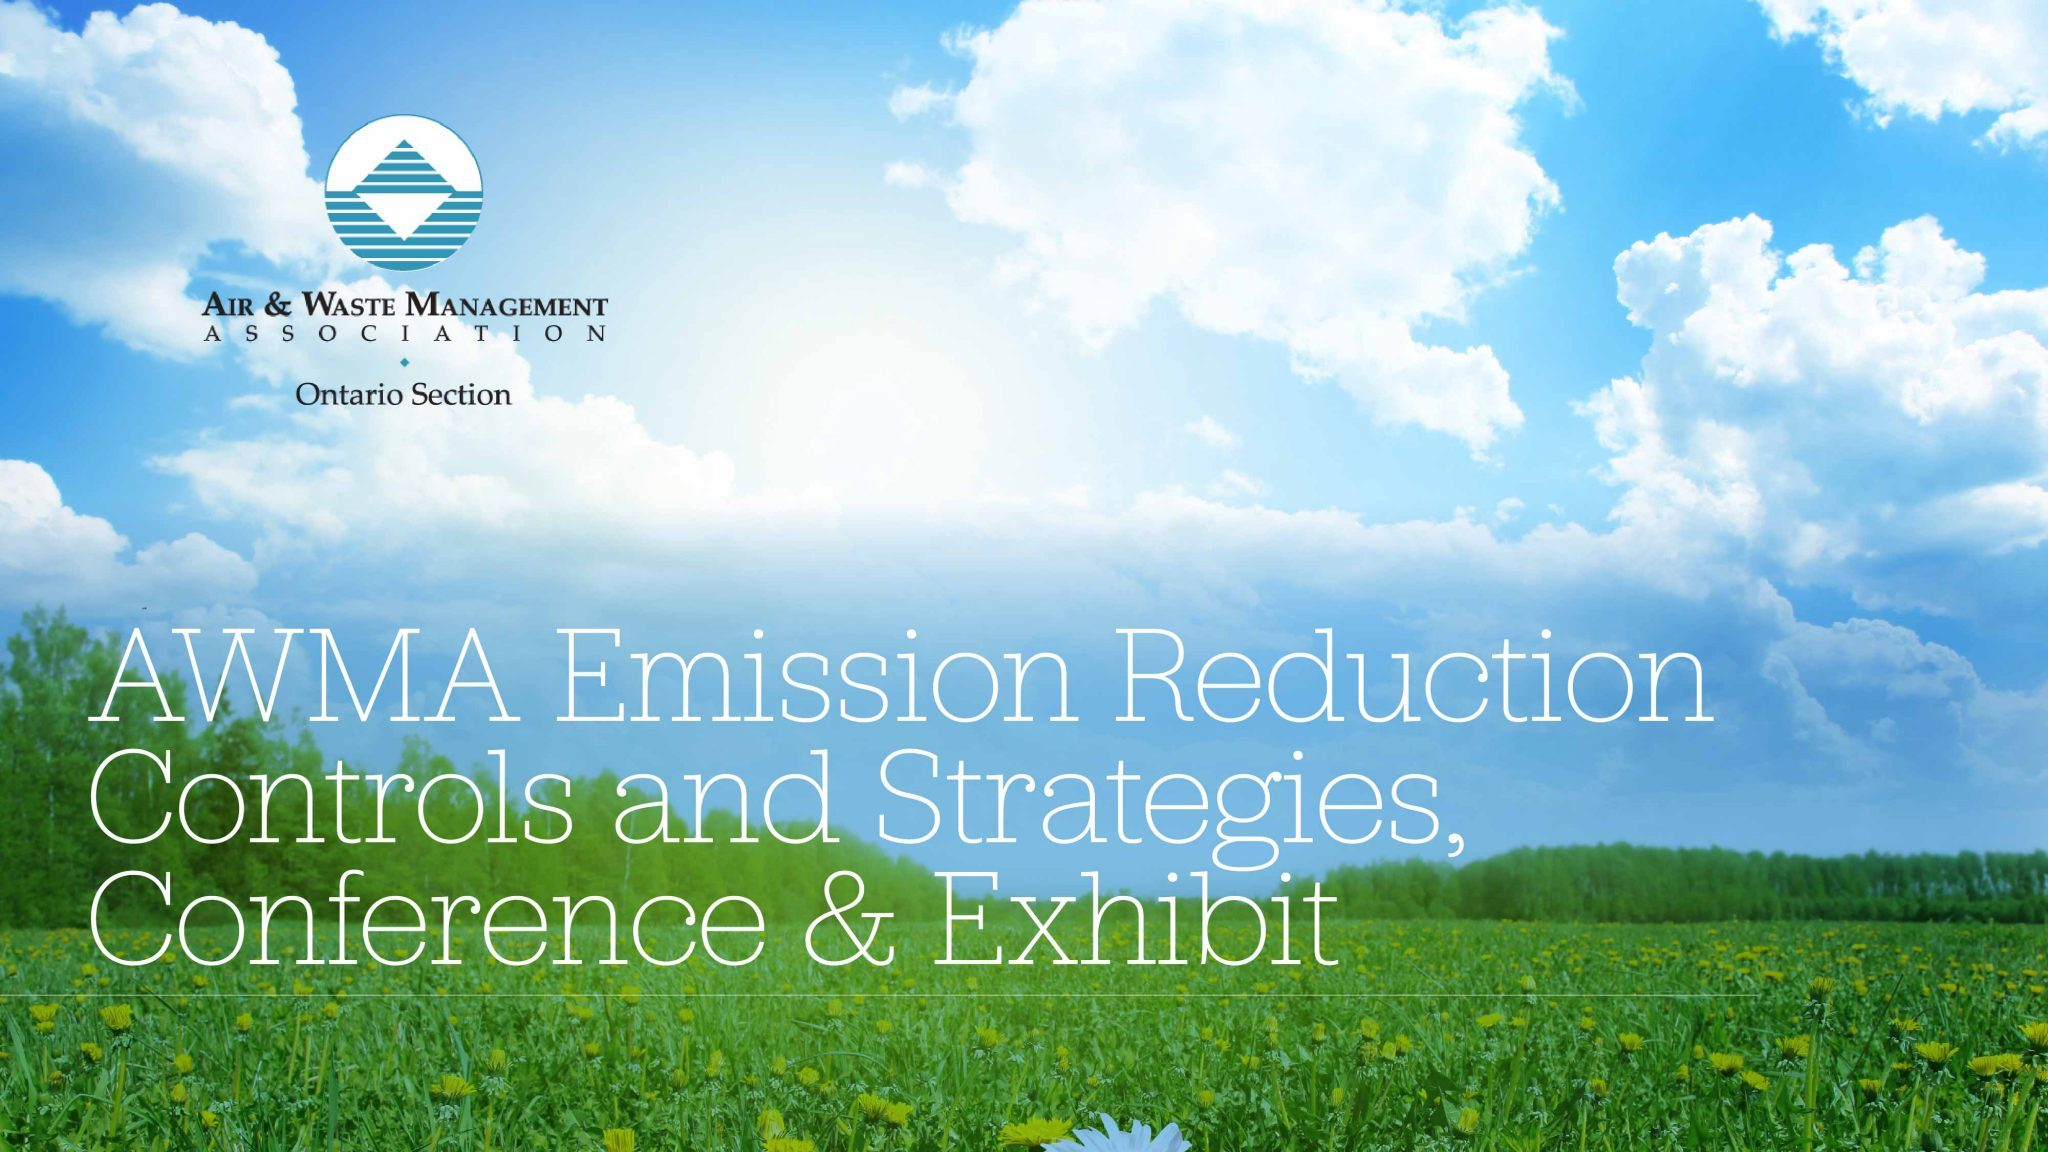 AWMA Emission Reduction Controls and Strategies, Conference & Exhibit